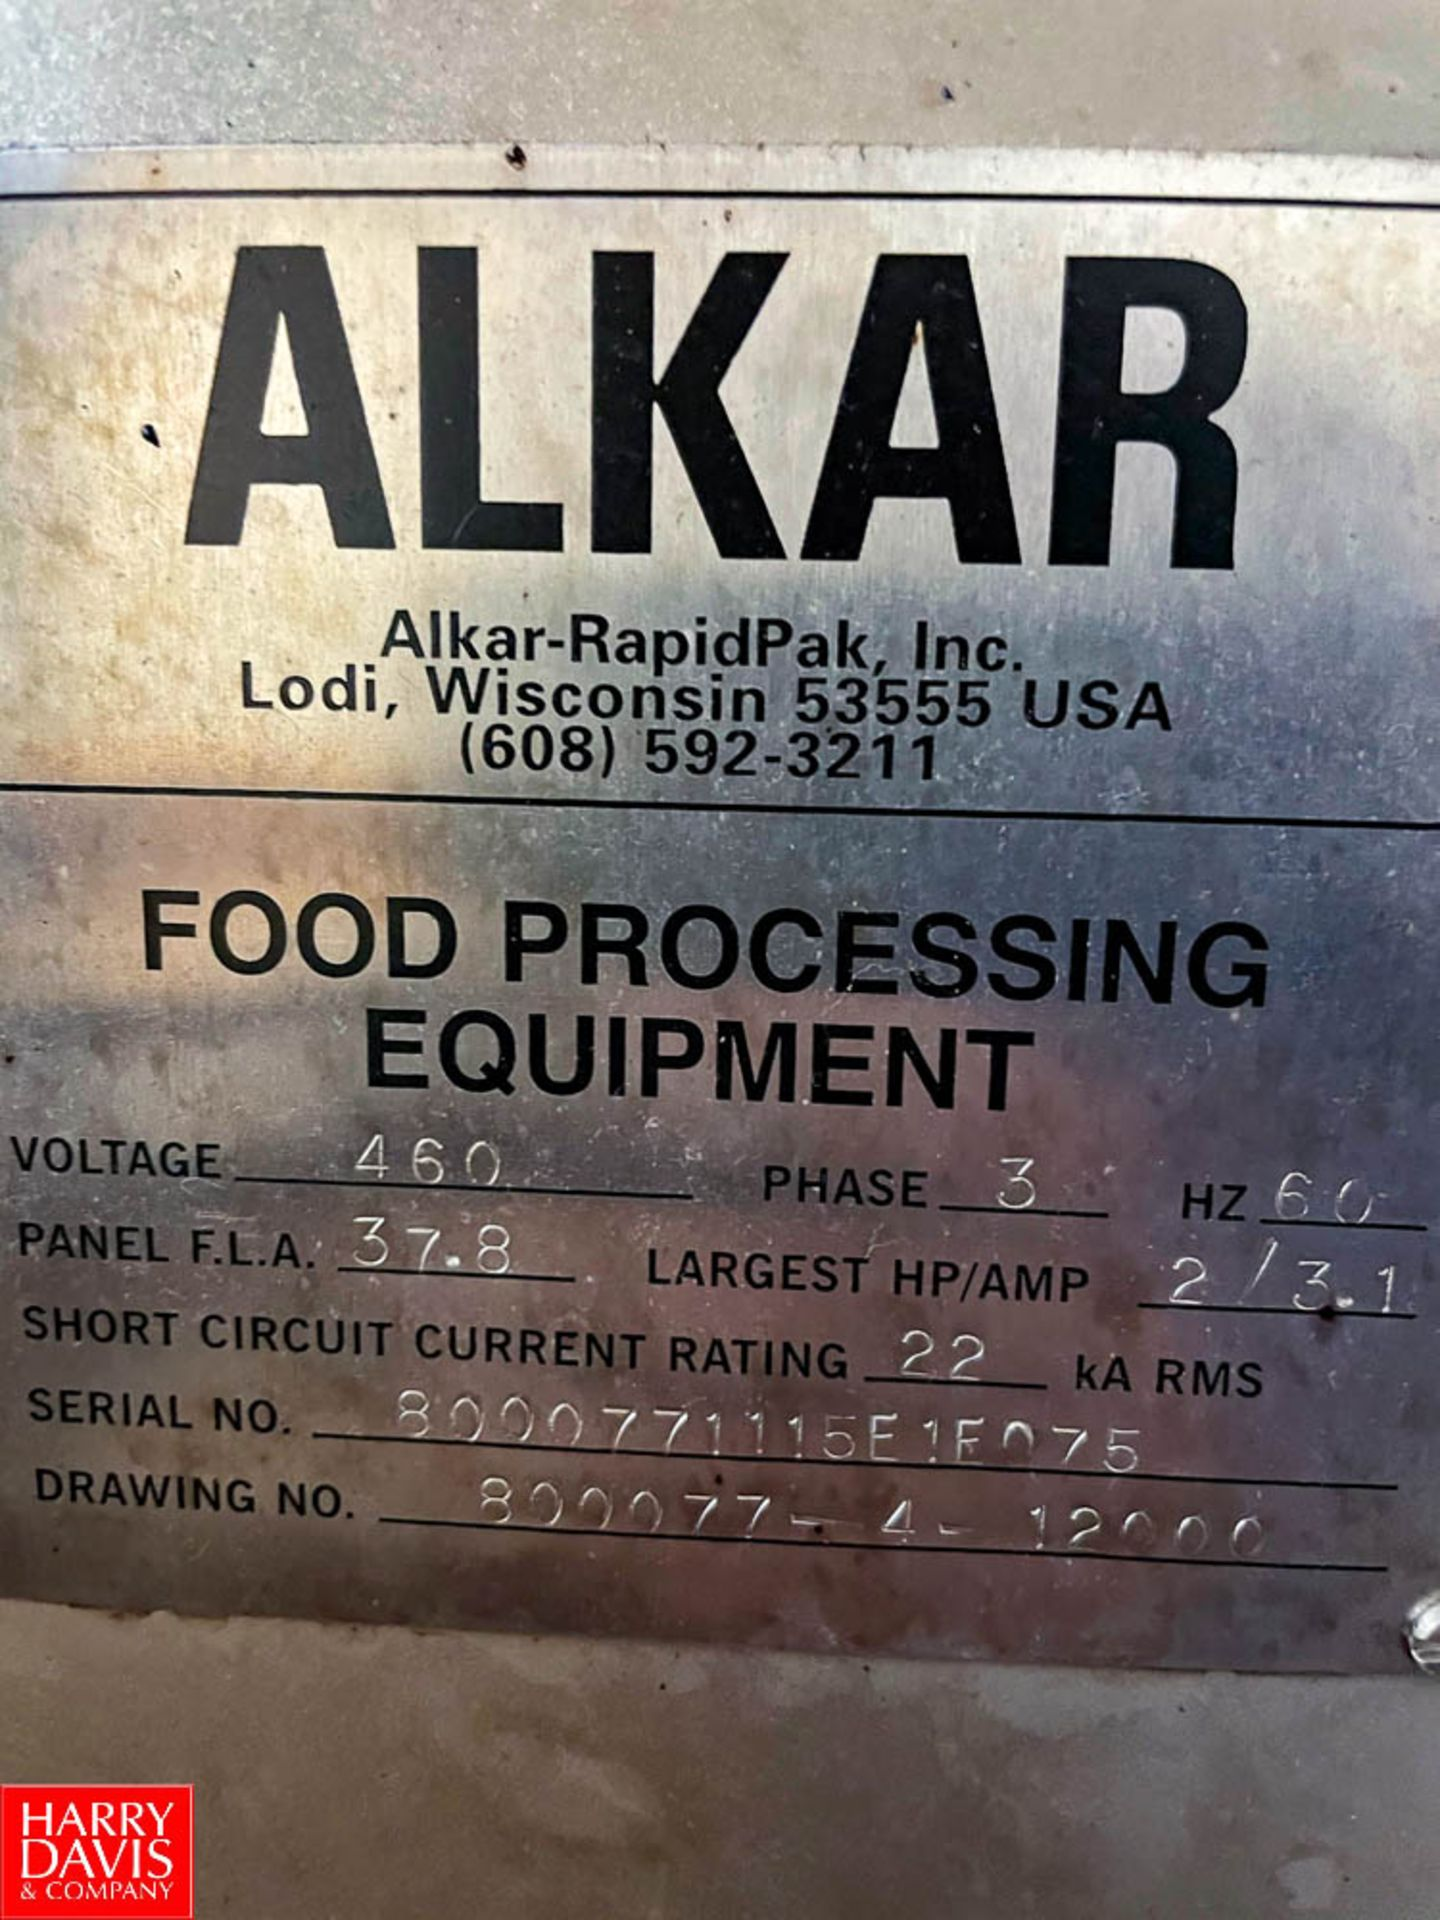 2015 Alkar Smoker with 120 Volts S/N: 8000771115E1F075 - Image 8 of 10